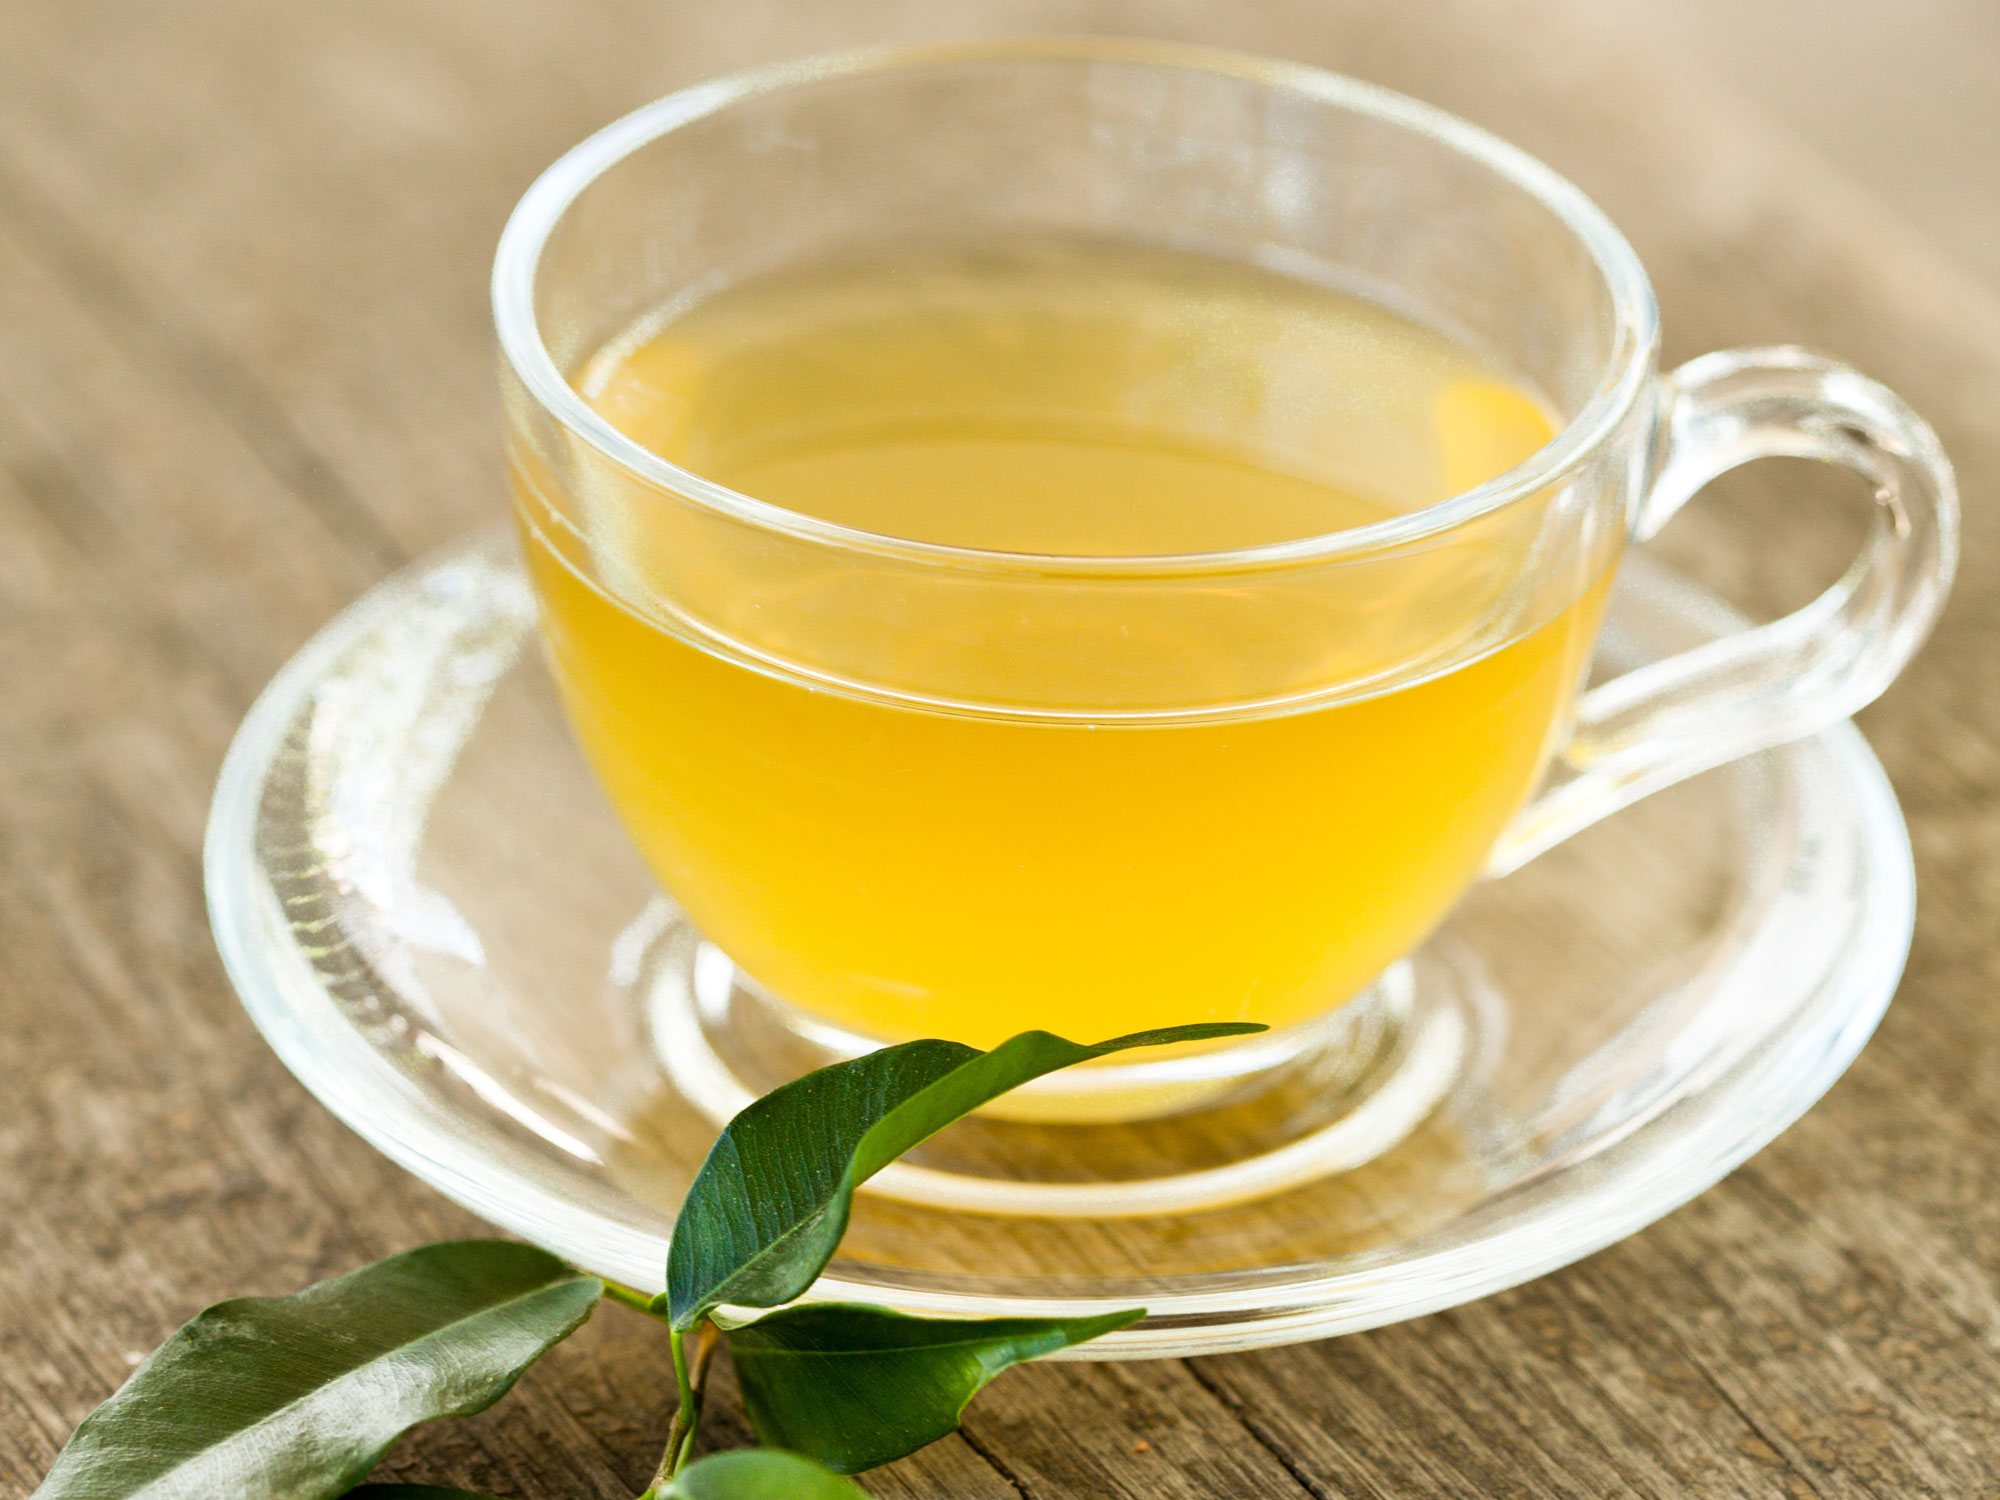 This mineral zaps green tea's superfood powers